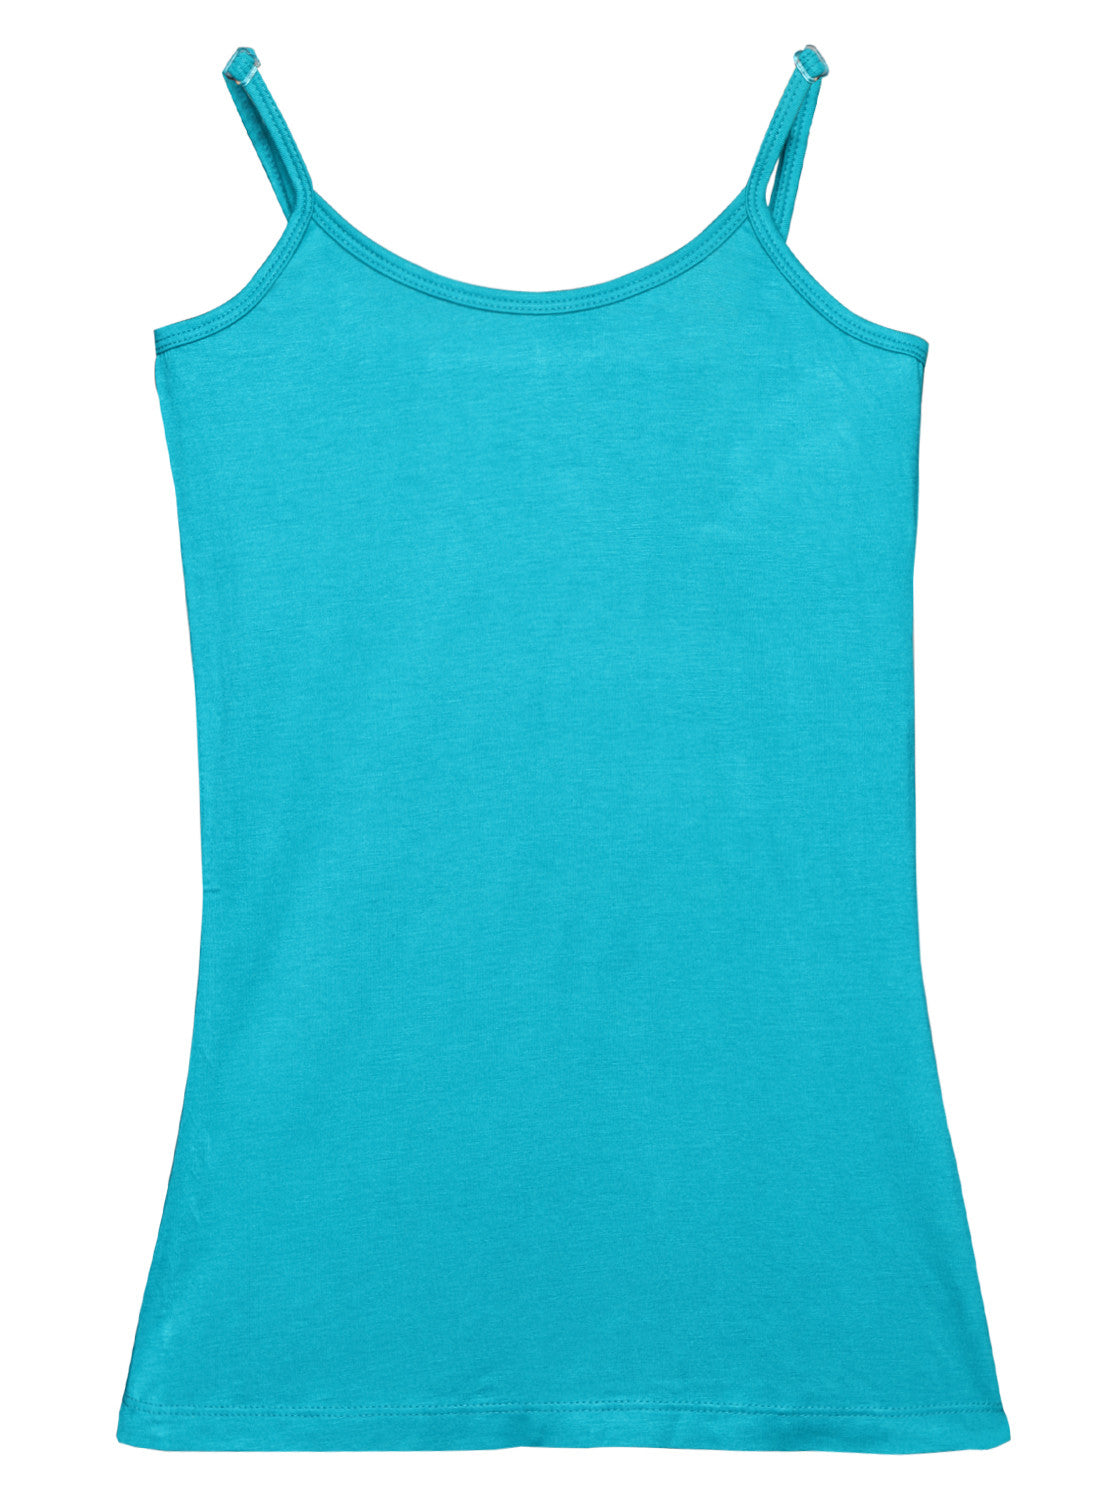 Blue Bamboo Cotton Spaghetti Top - GENZEE